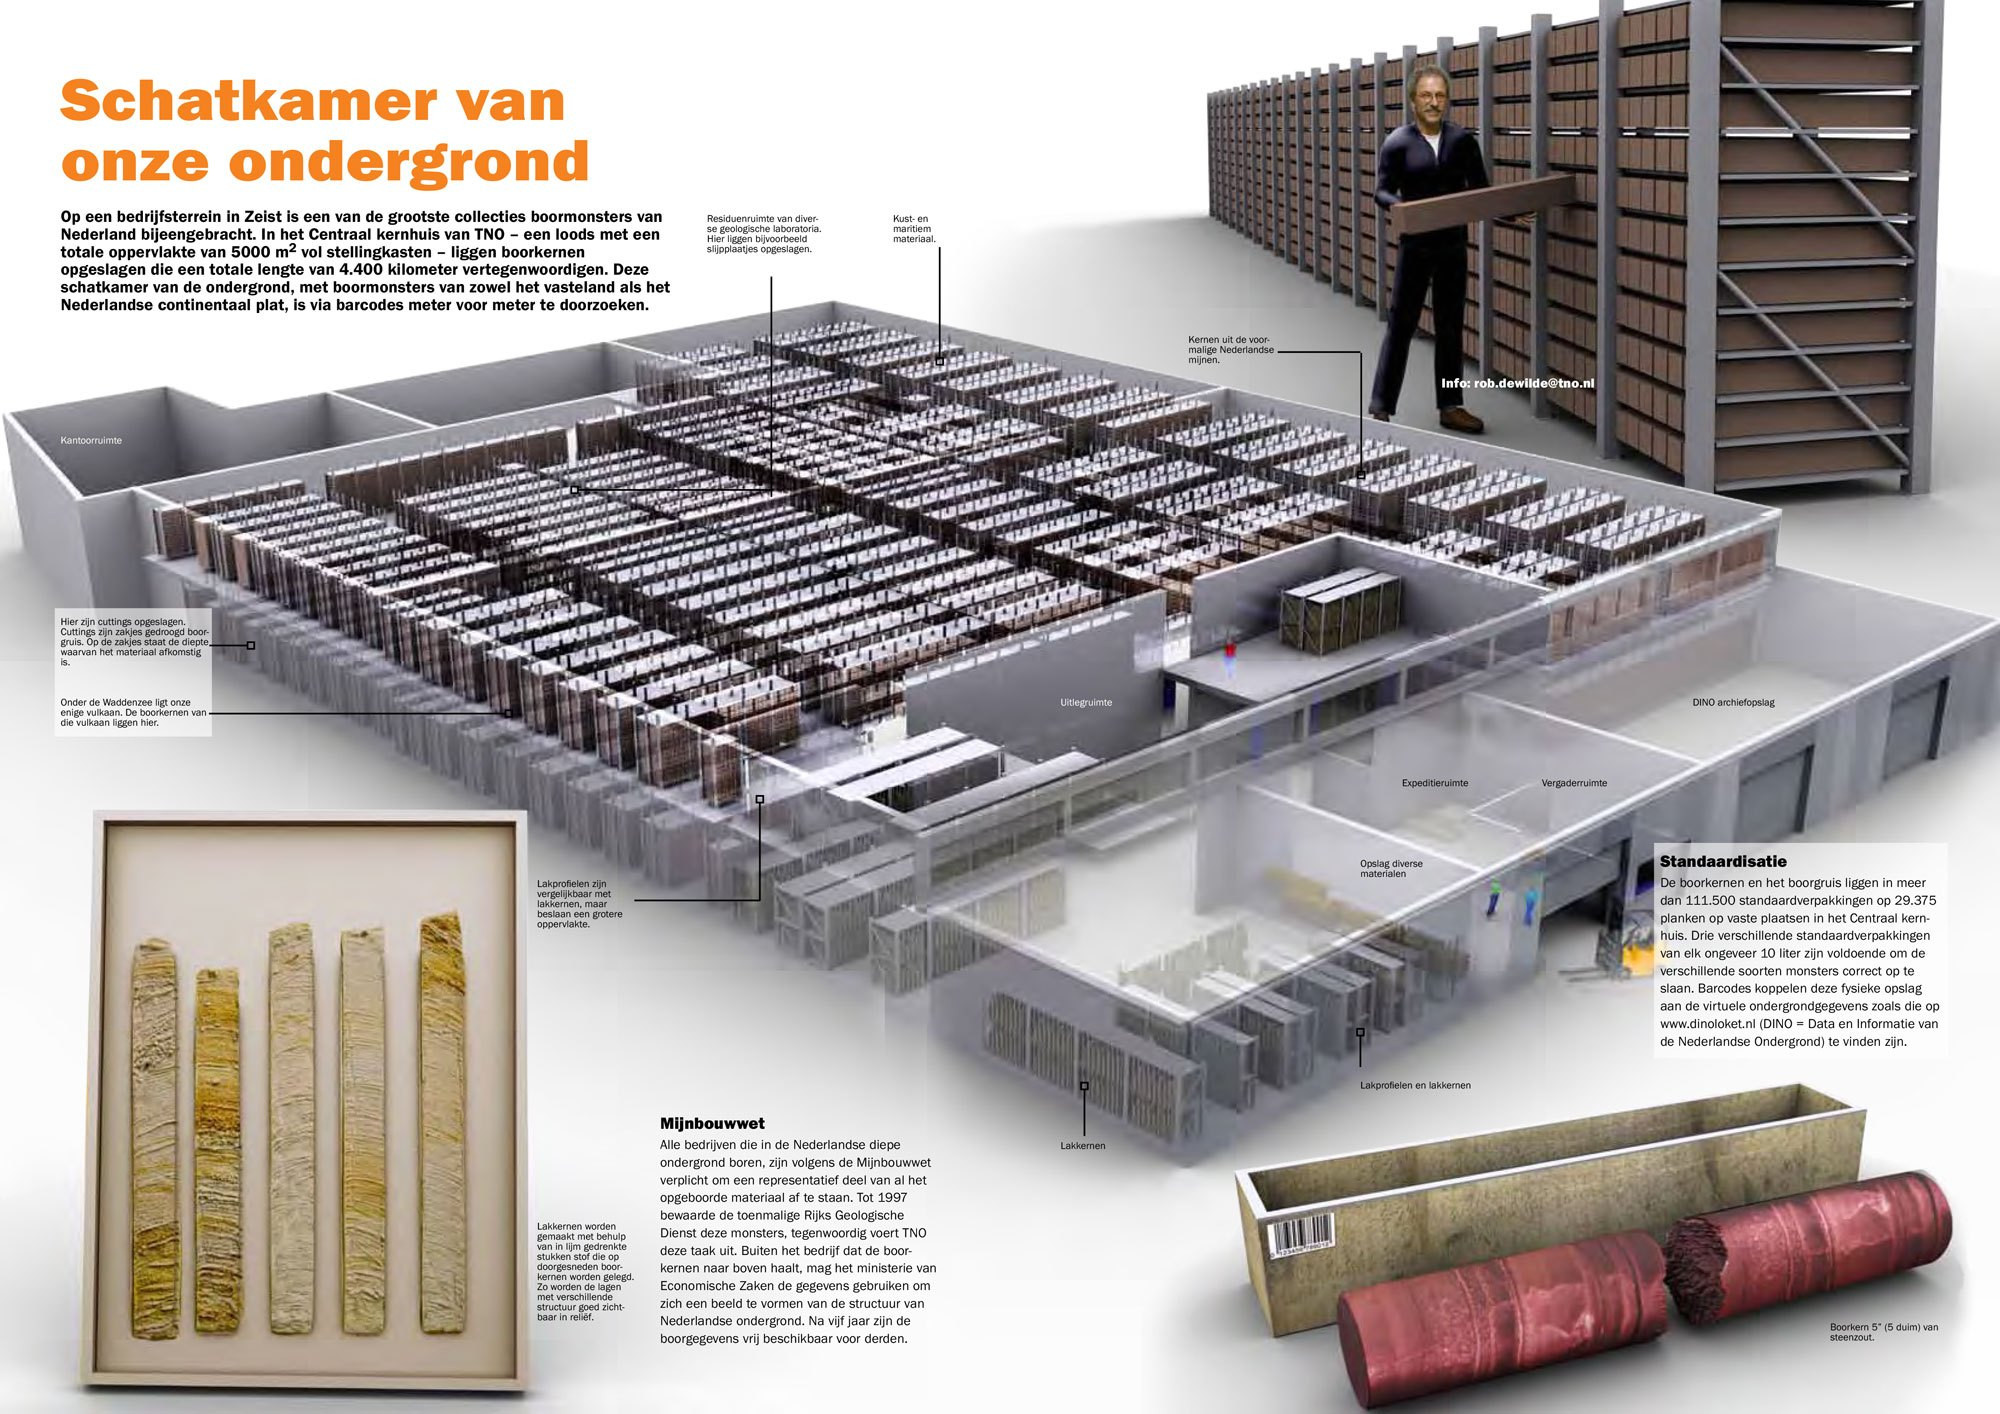 Spread about the warehouse with drill samples of the Dutch geological underground.